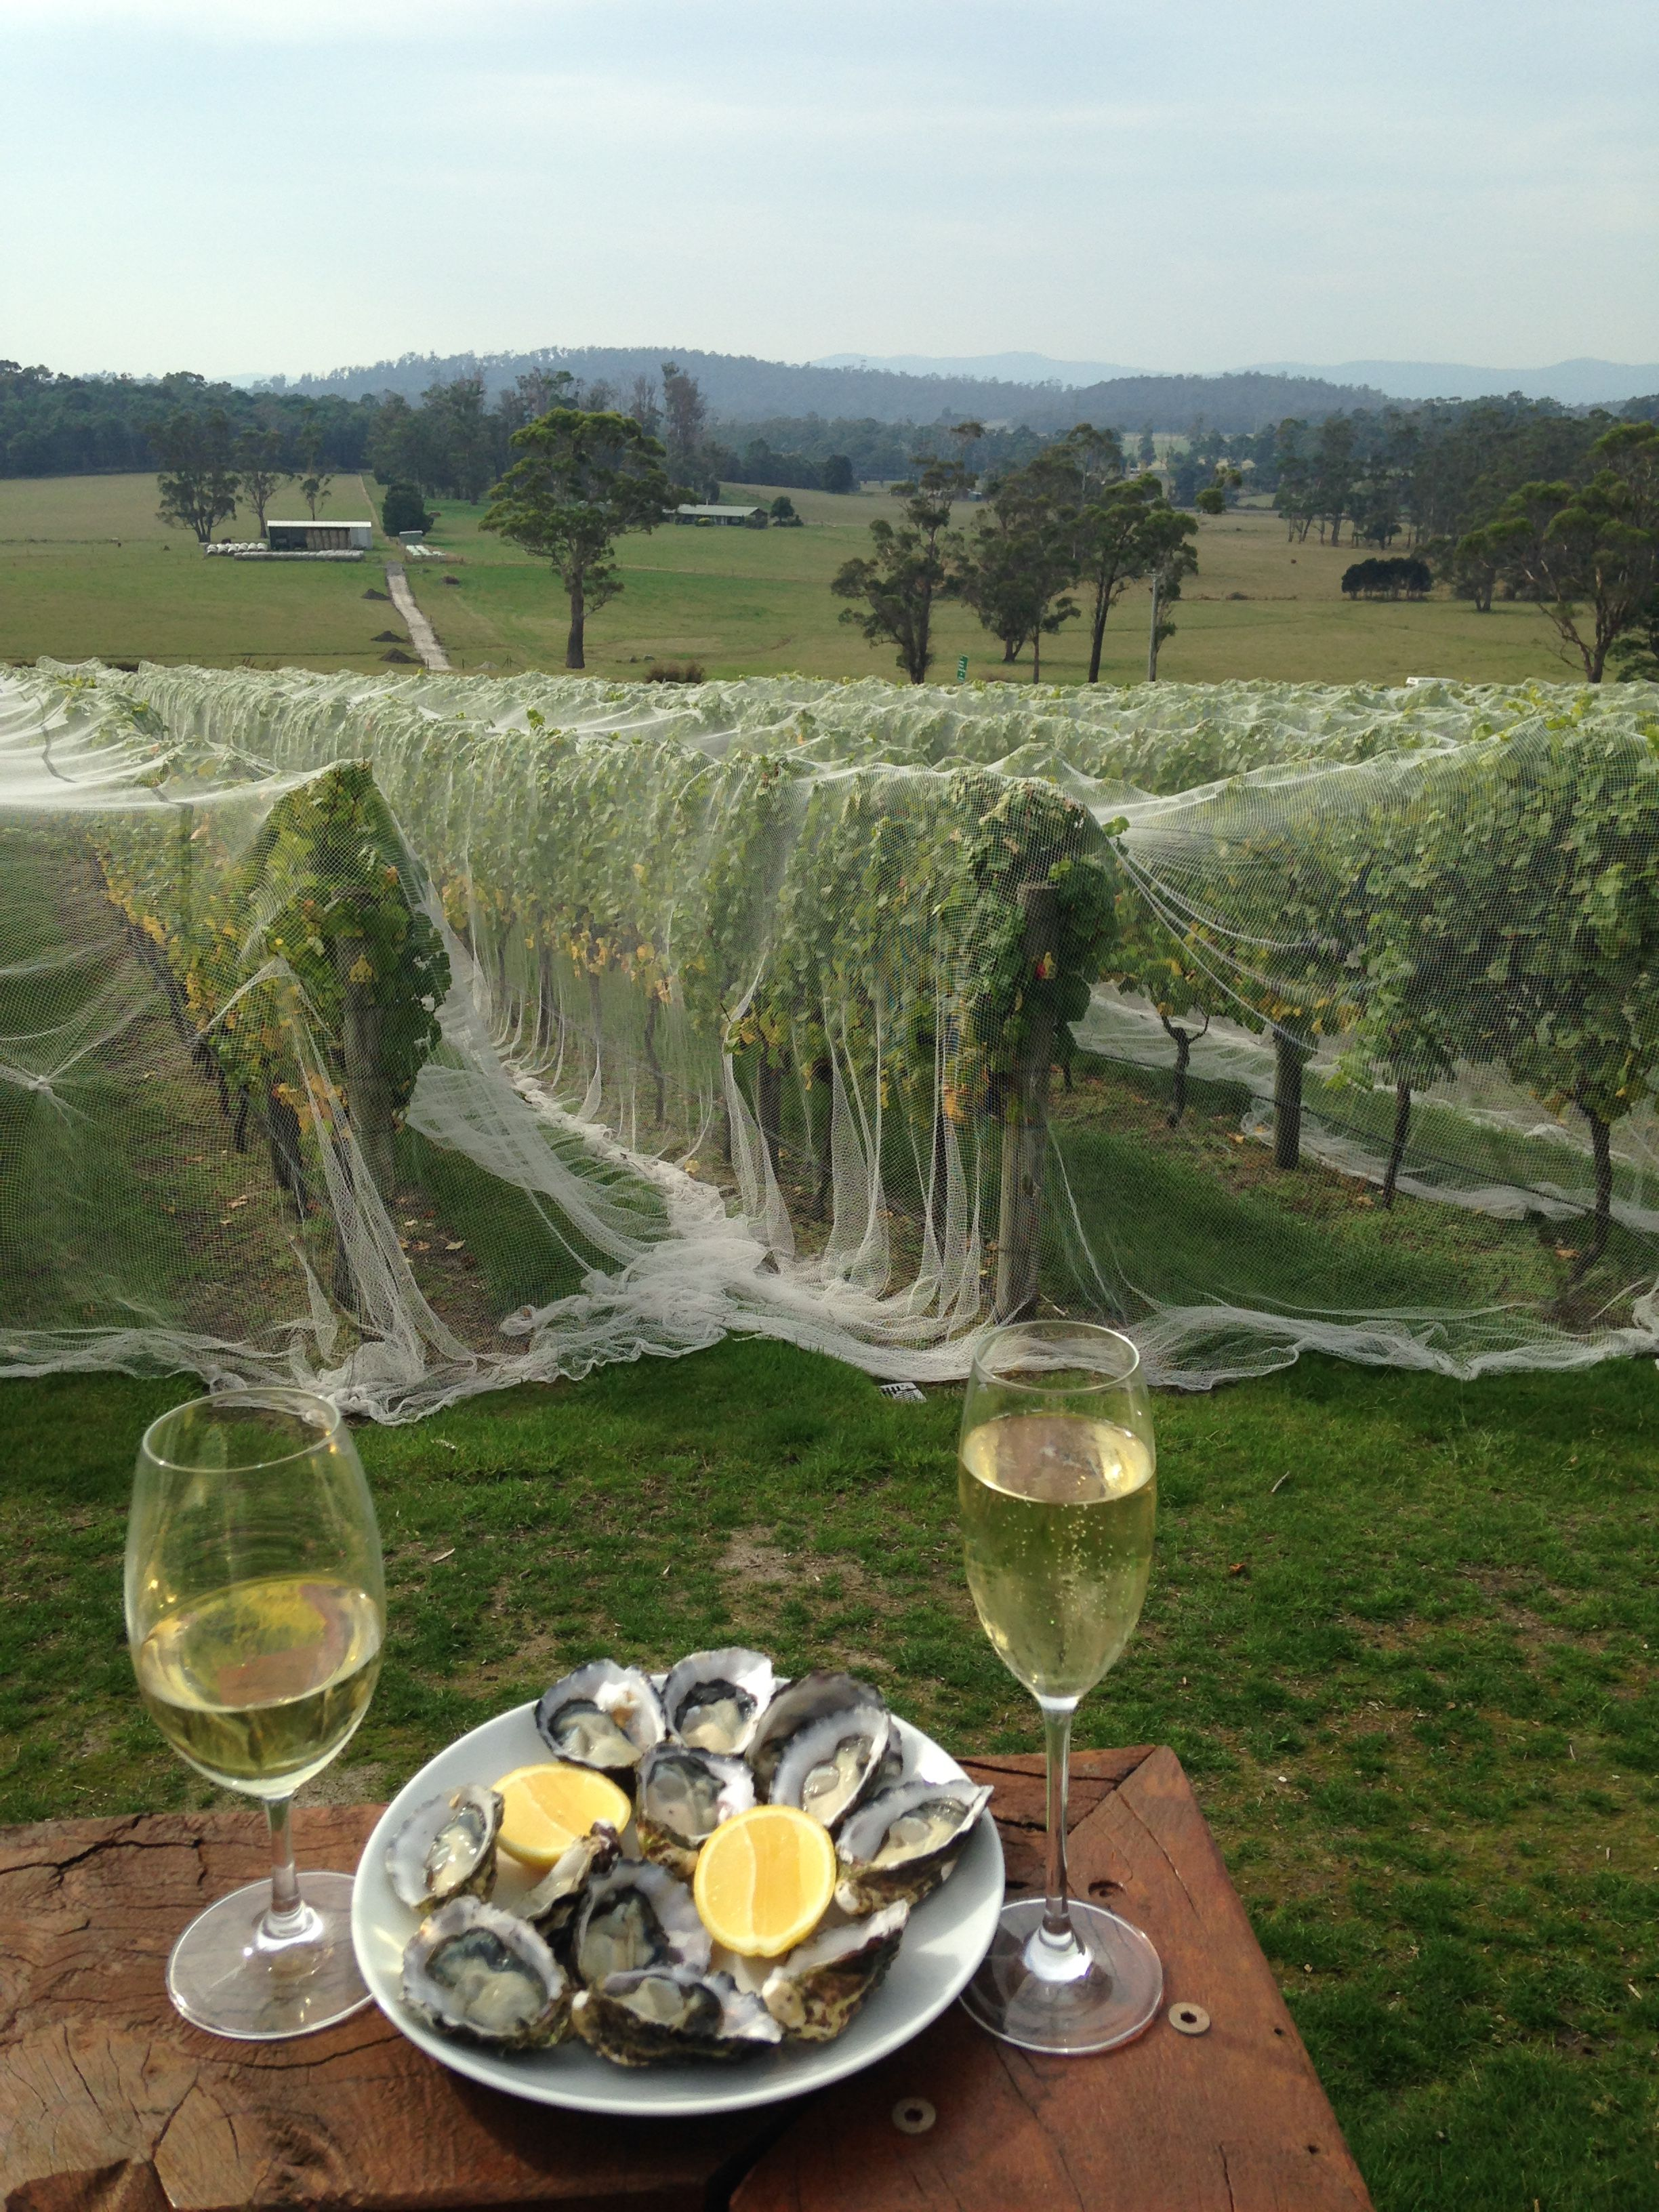 Join us at the cellar door for tassie oysters u wine over easter